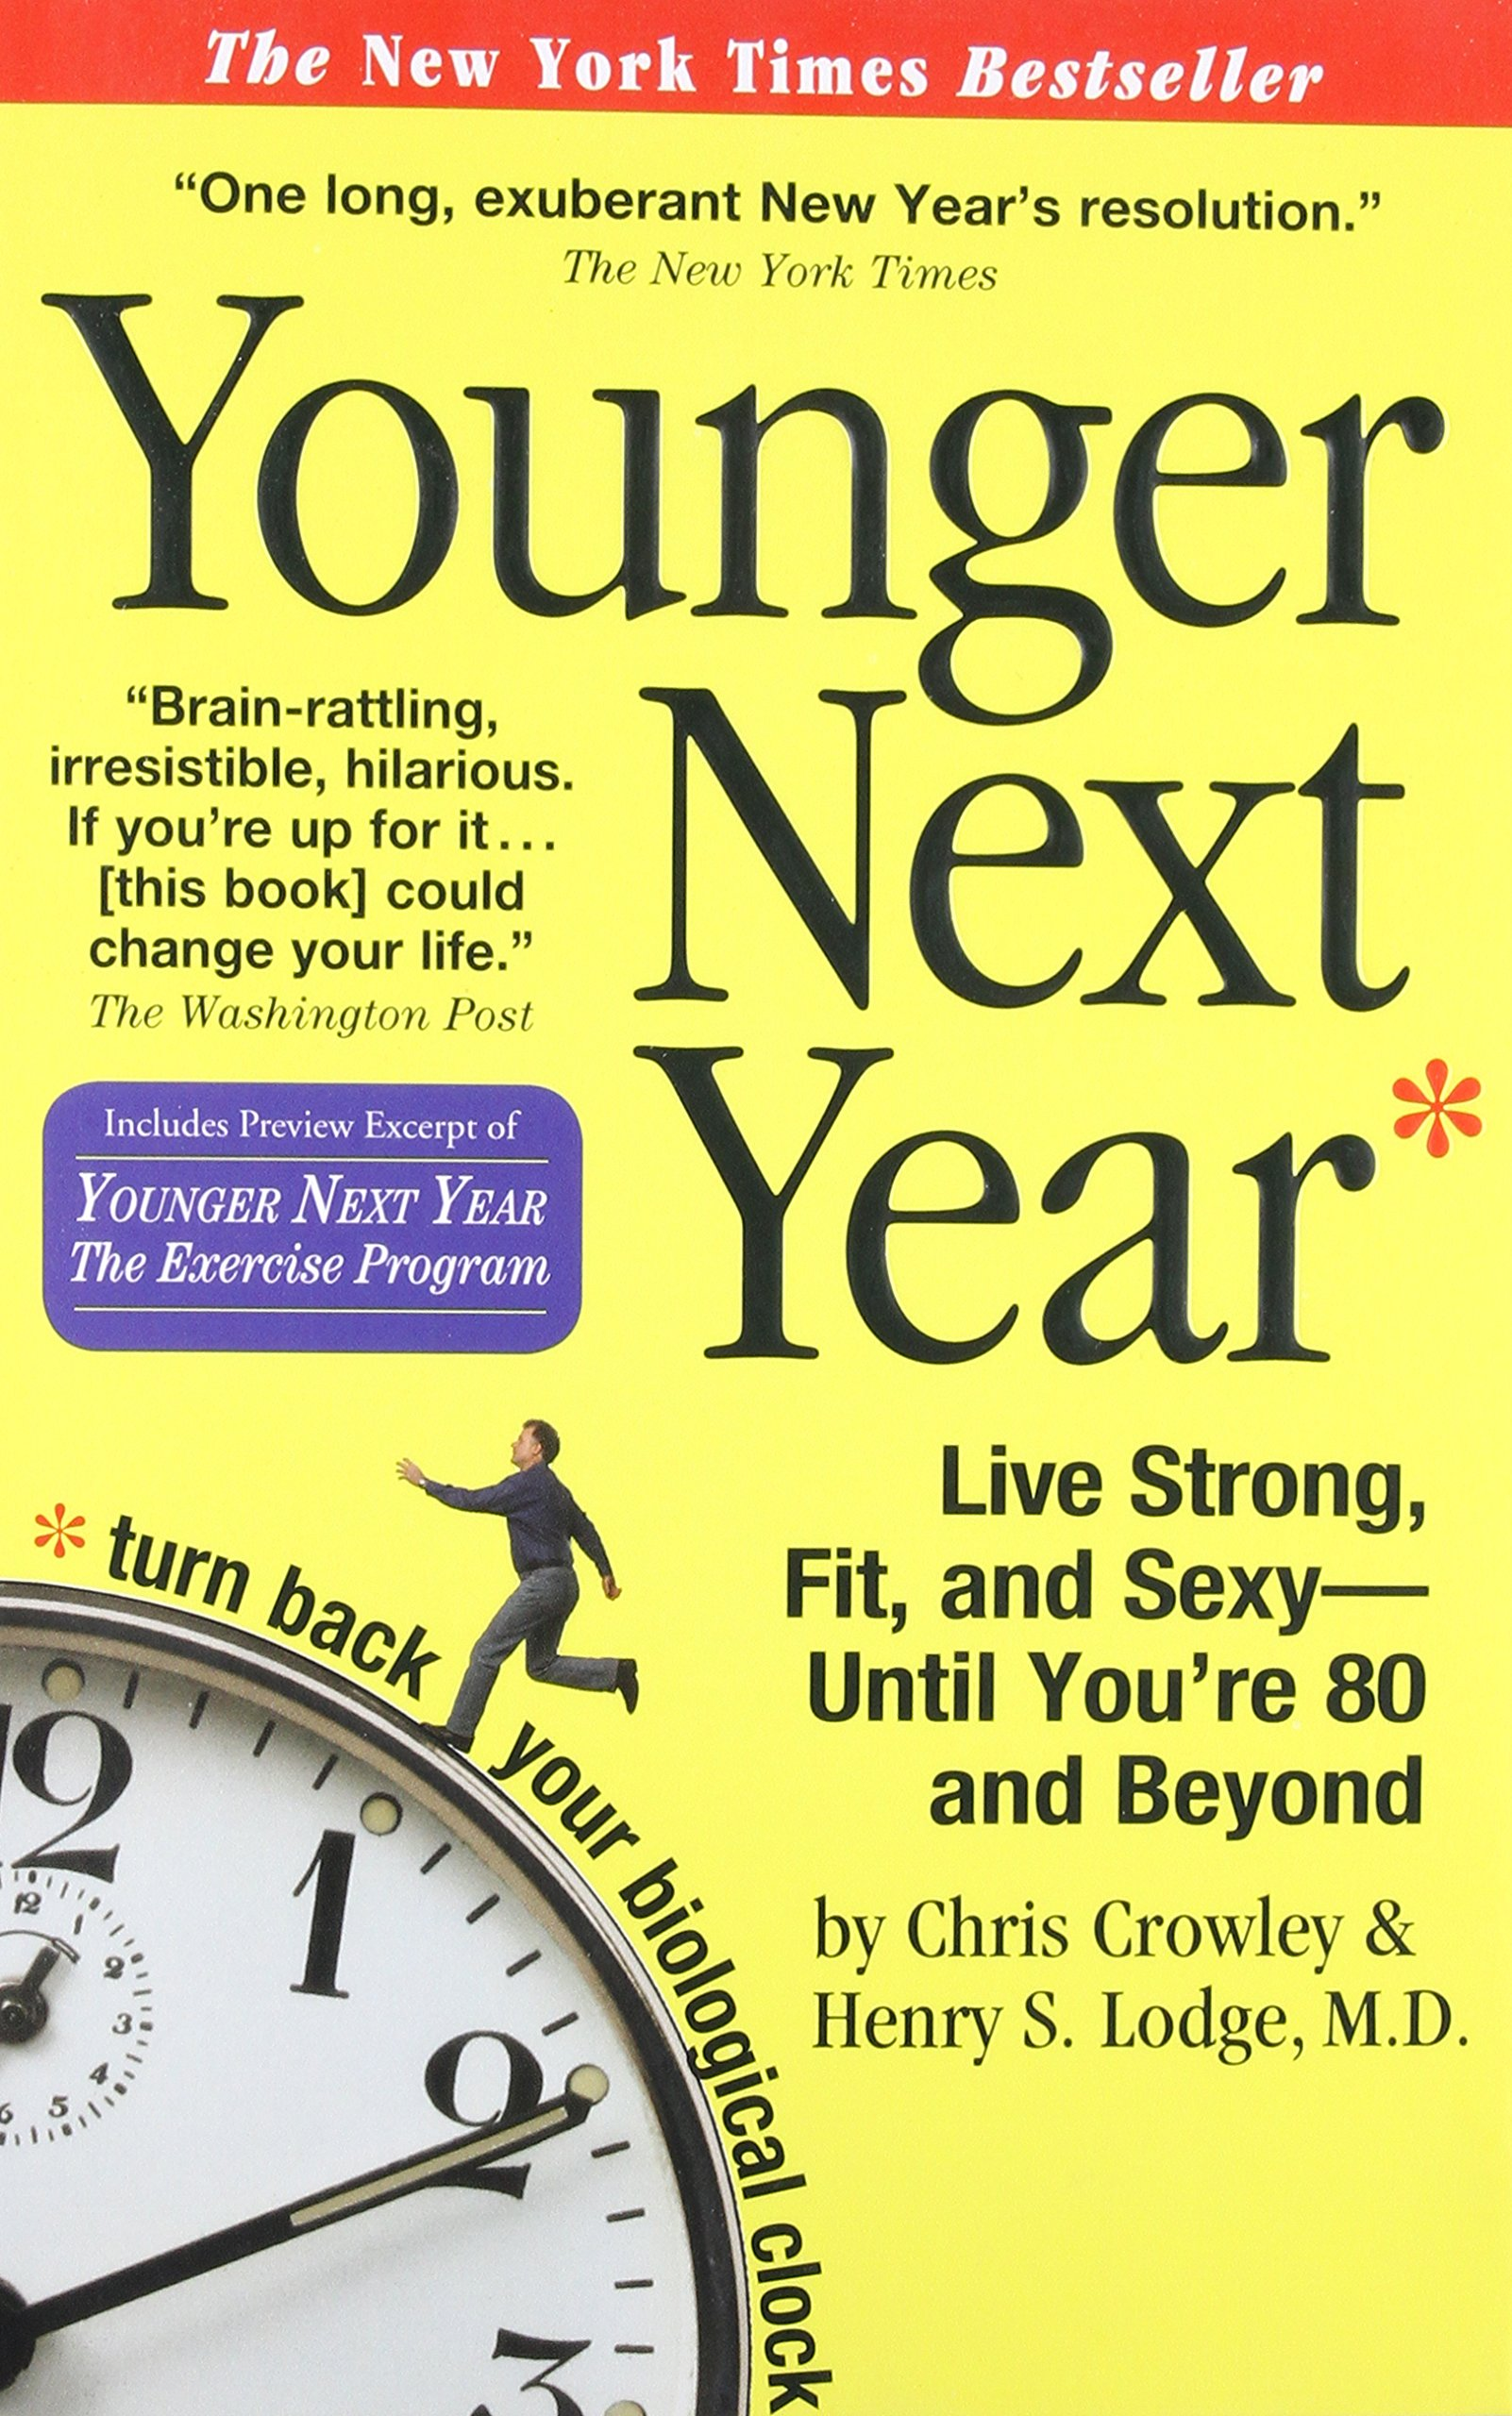 Younger next year live strong fit and sexy until youre 80 and younger next year live strong fit and sexy until youre 80 and beyond chris crowley henry s lodge 0019628147738 amazon books fandeluxe Images